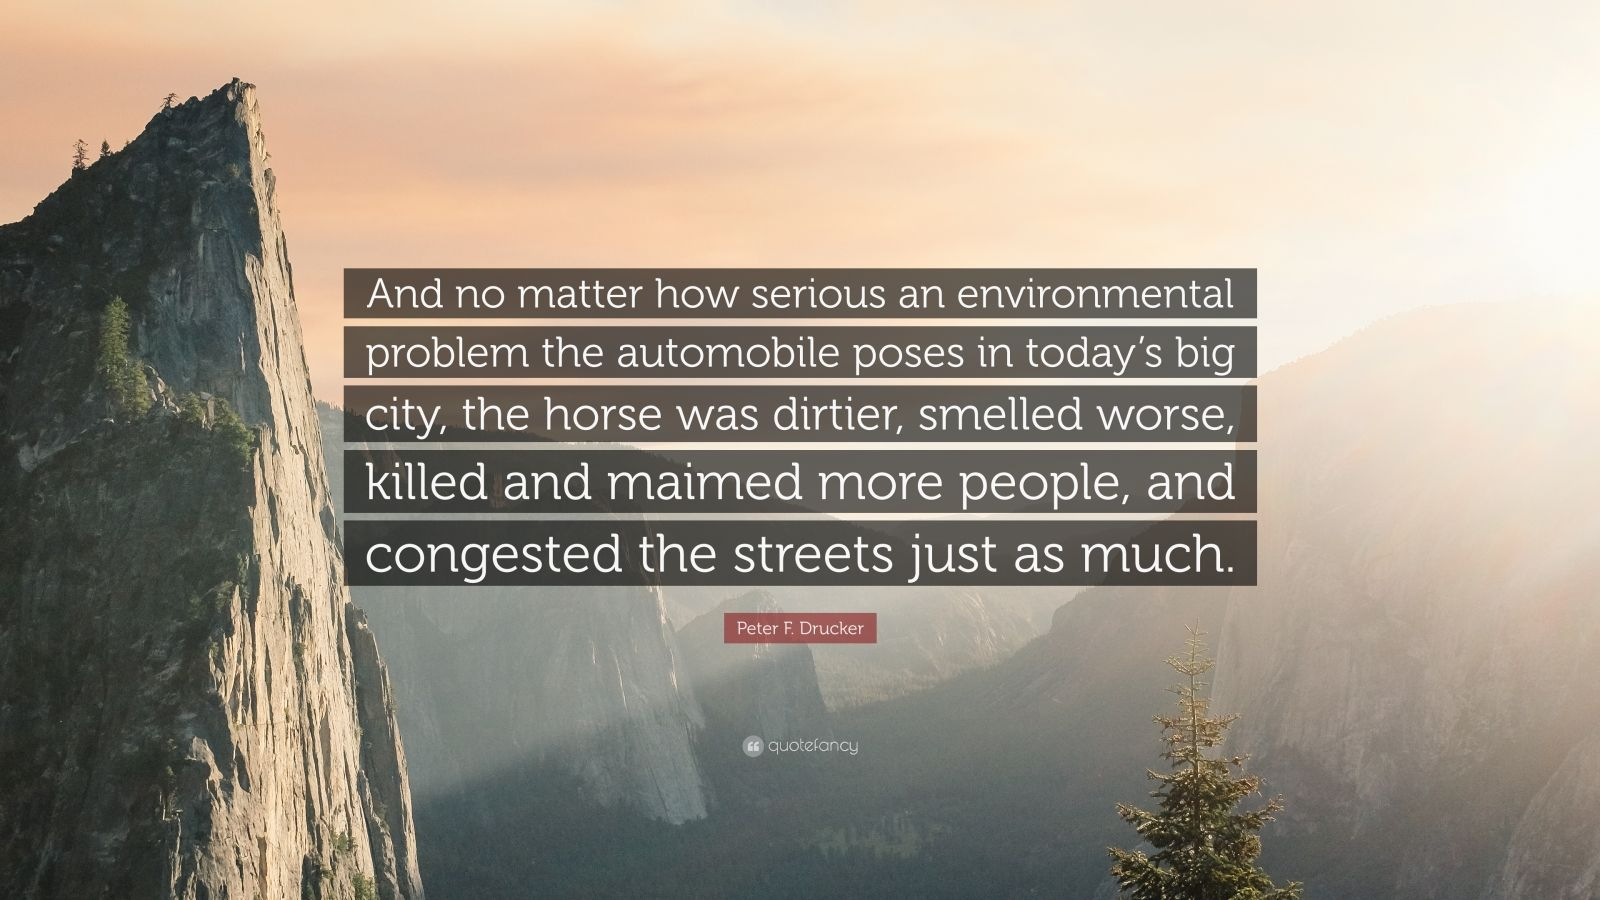 """Peter F. Drucker Quote: """"And no matter how serious an environmental problem the automobile poses in today's big city, the horse was dirtier, smelled worse, killed and maimed more people, and congested the streets just as much."""""""